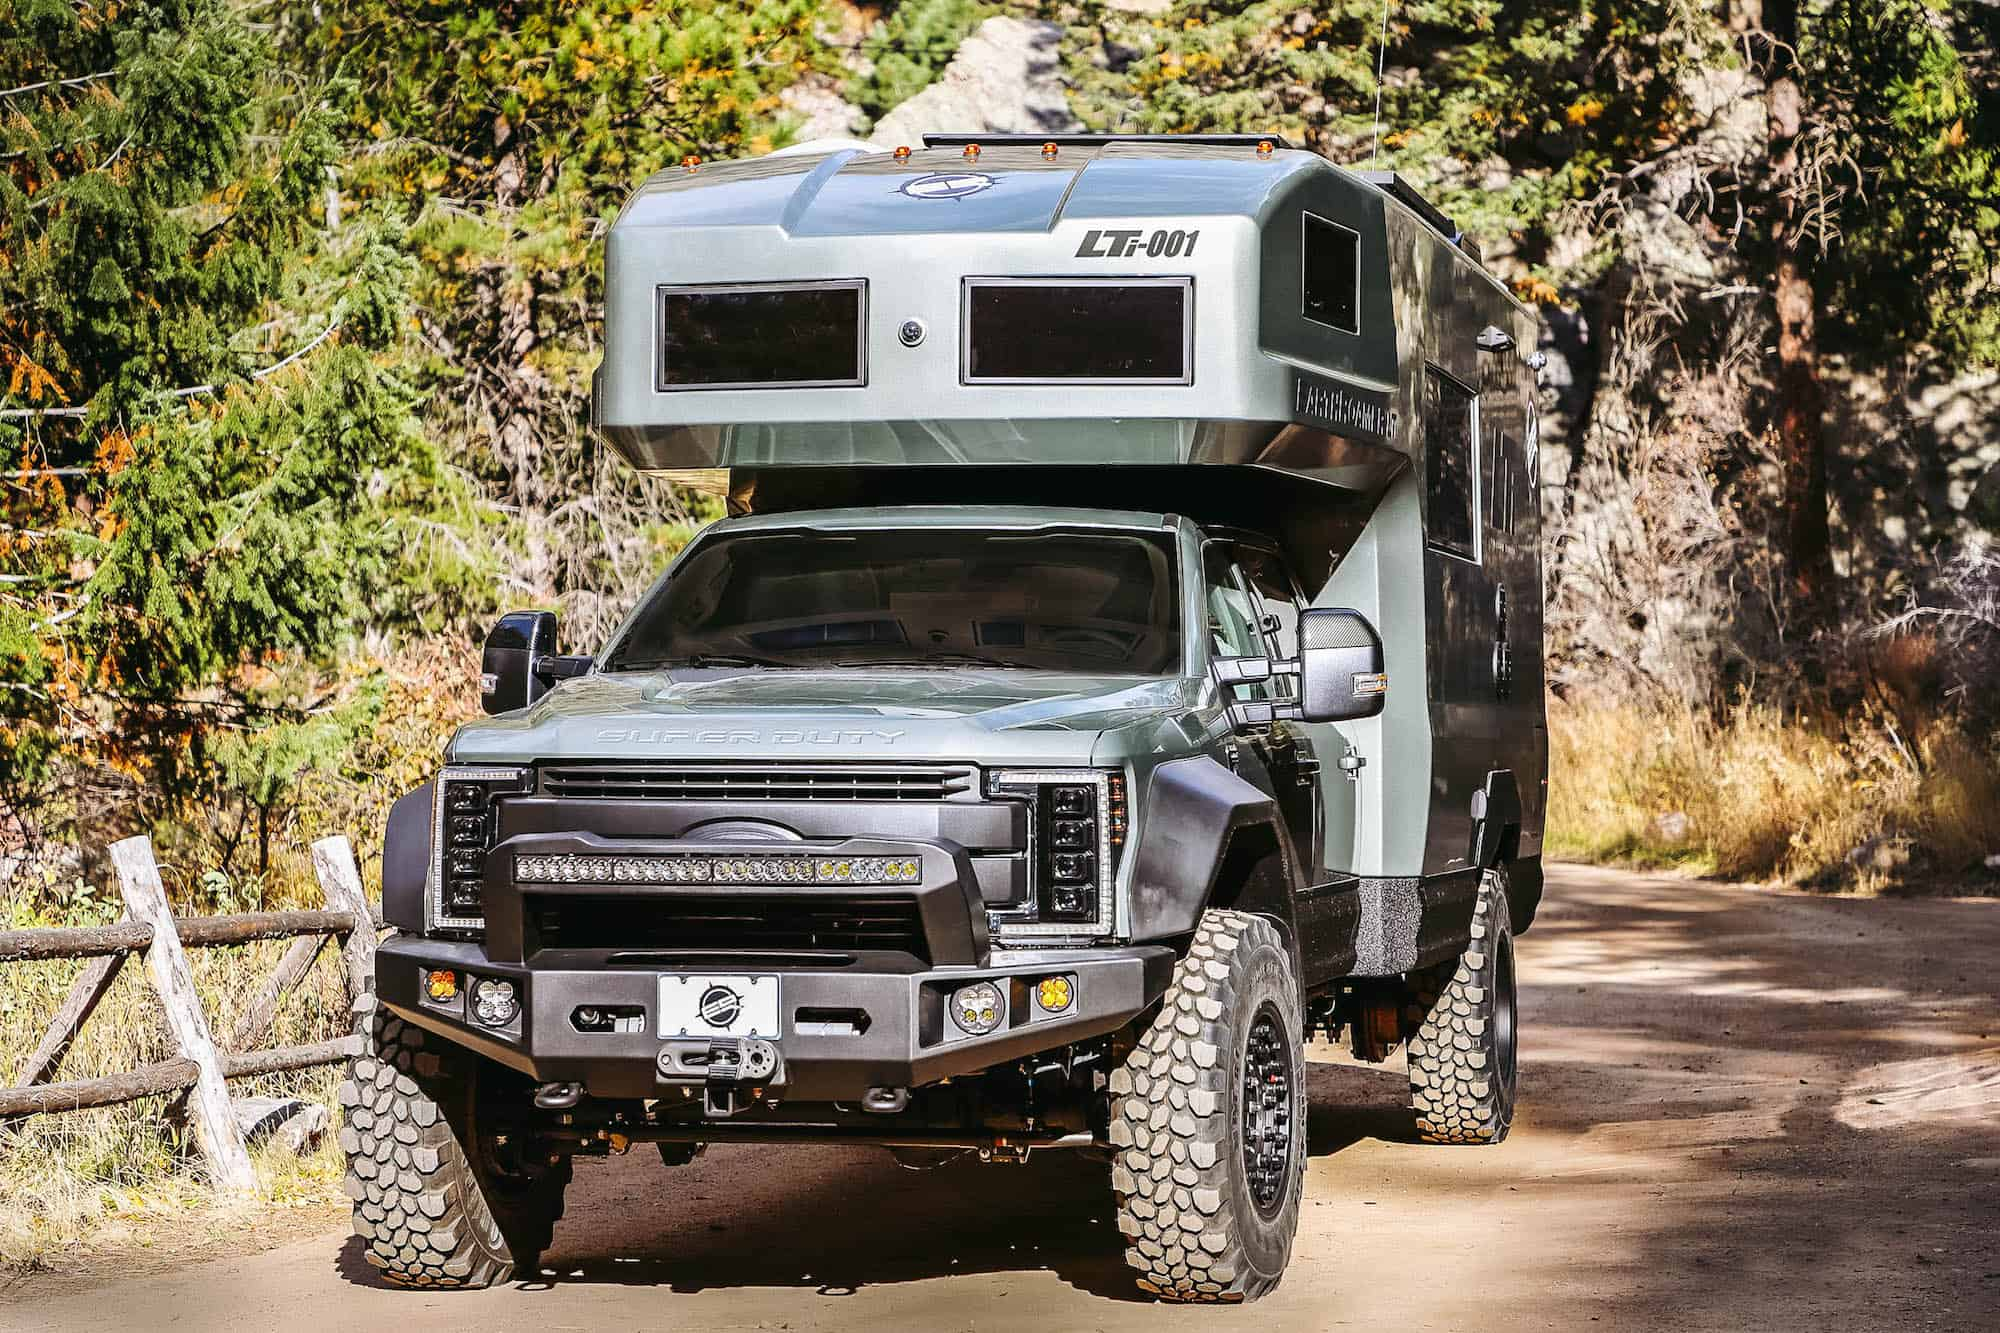 EarthRoamer LTi carbon fiber expedition vehicle front